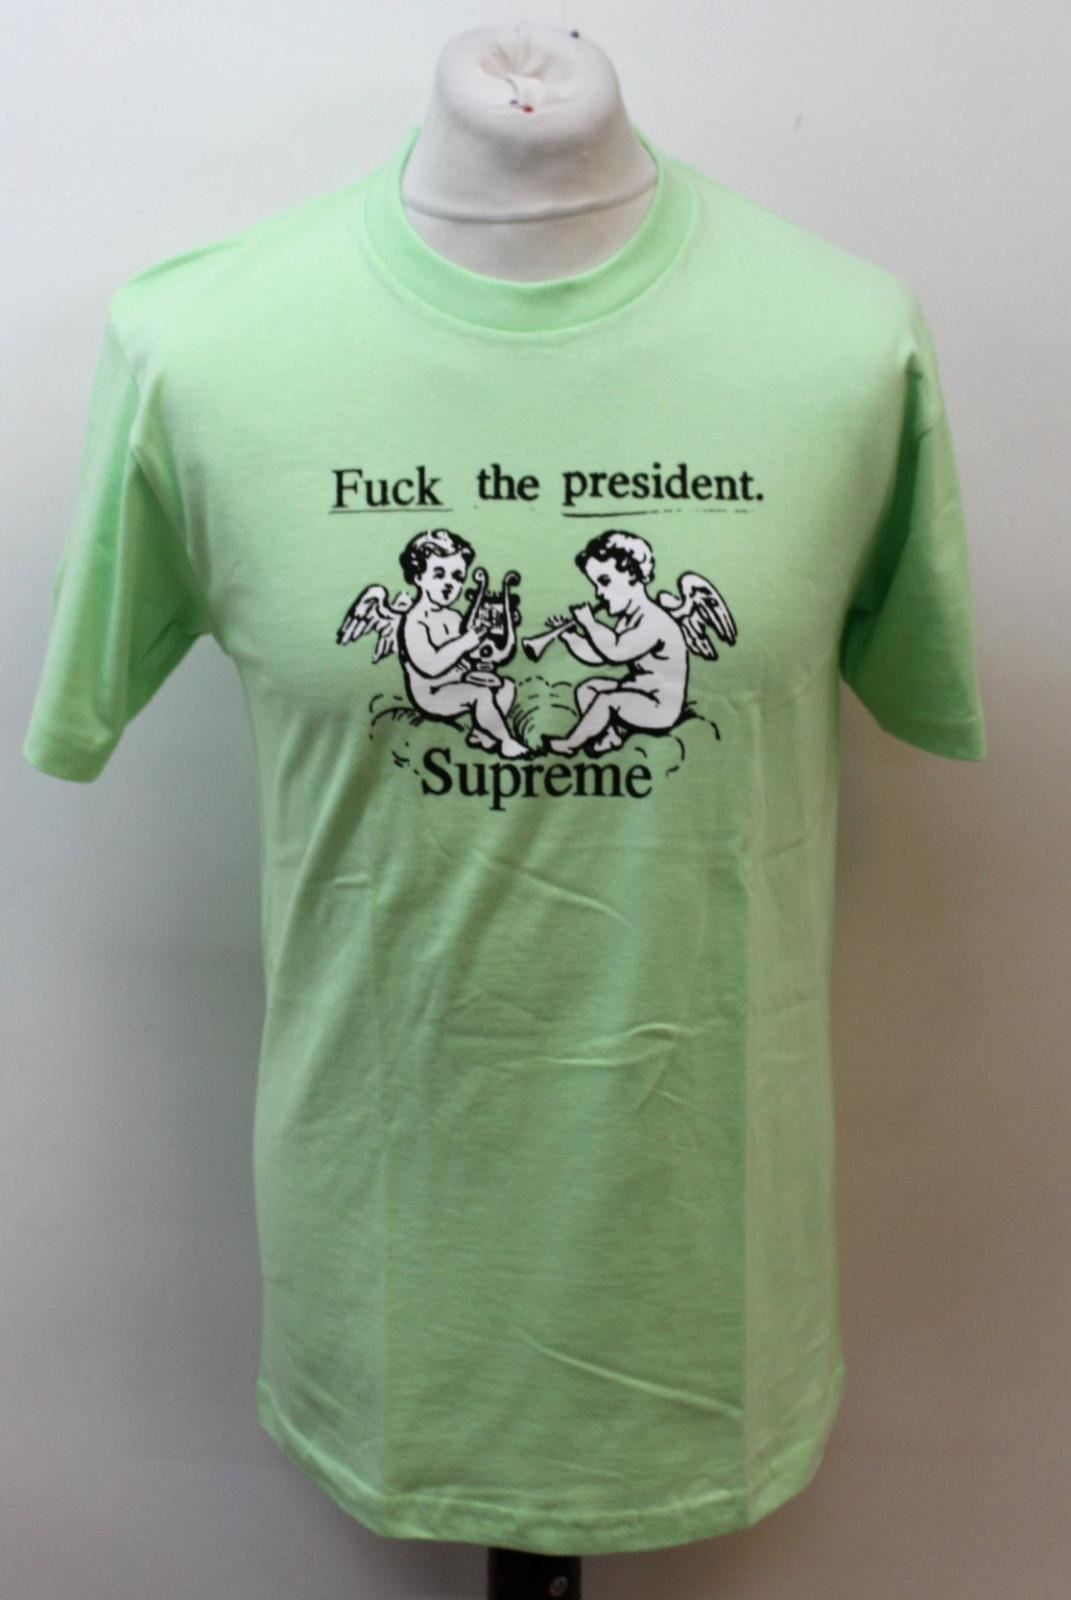 SUPREME Men's Neon Green Cotton Short Sleeve Graphic T-Shirt Size M BNWT